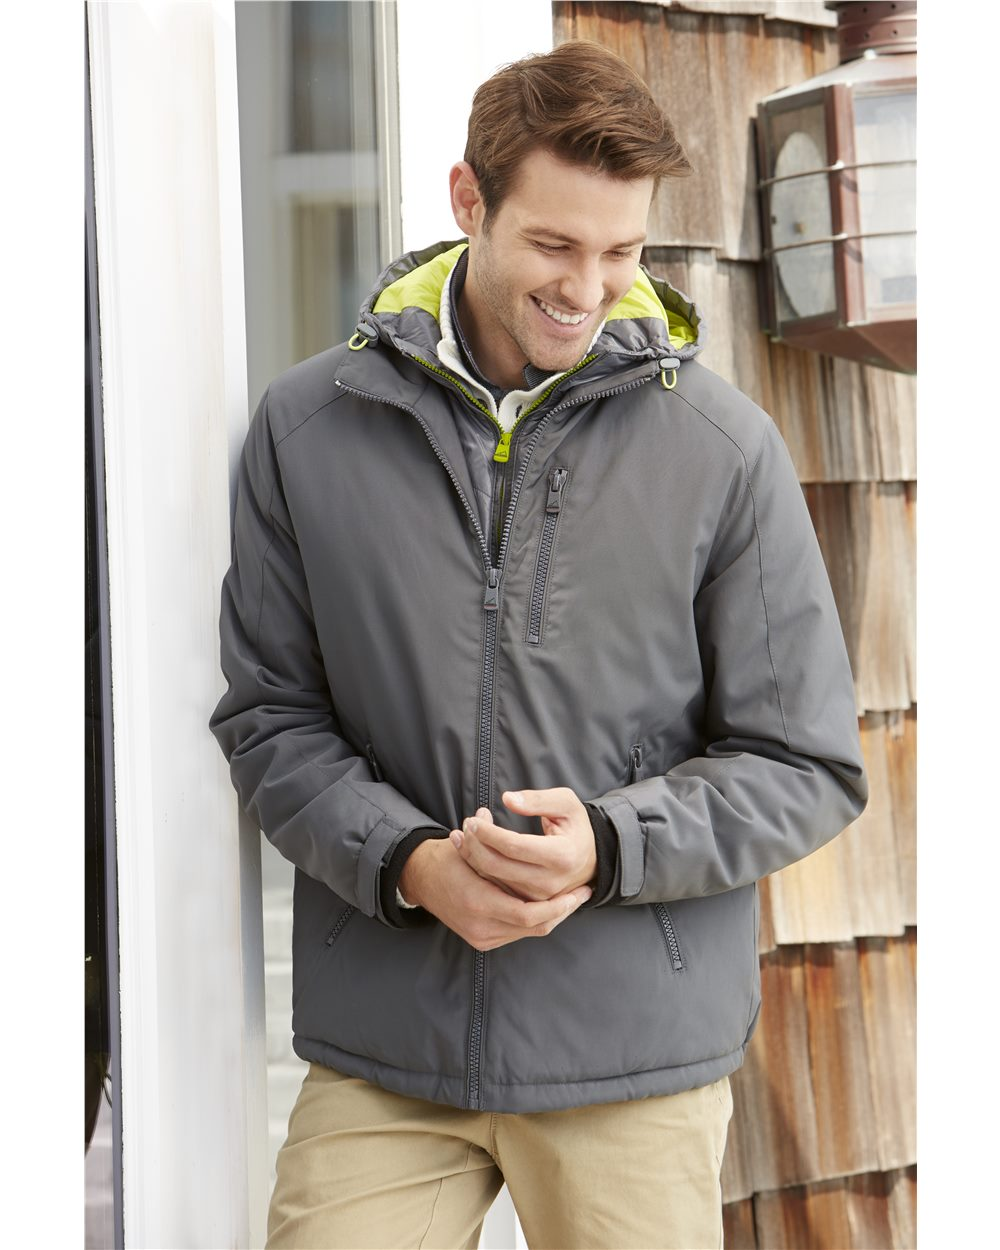 Weatherproof 17603 - 32 Degrees VRY WRM Turbo Jacket